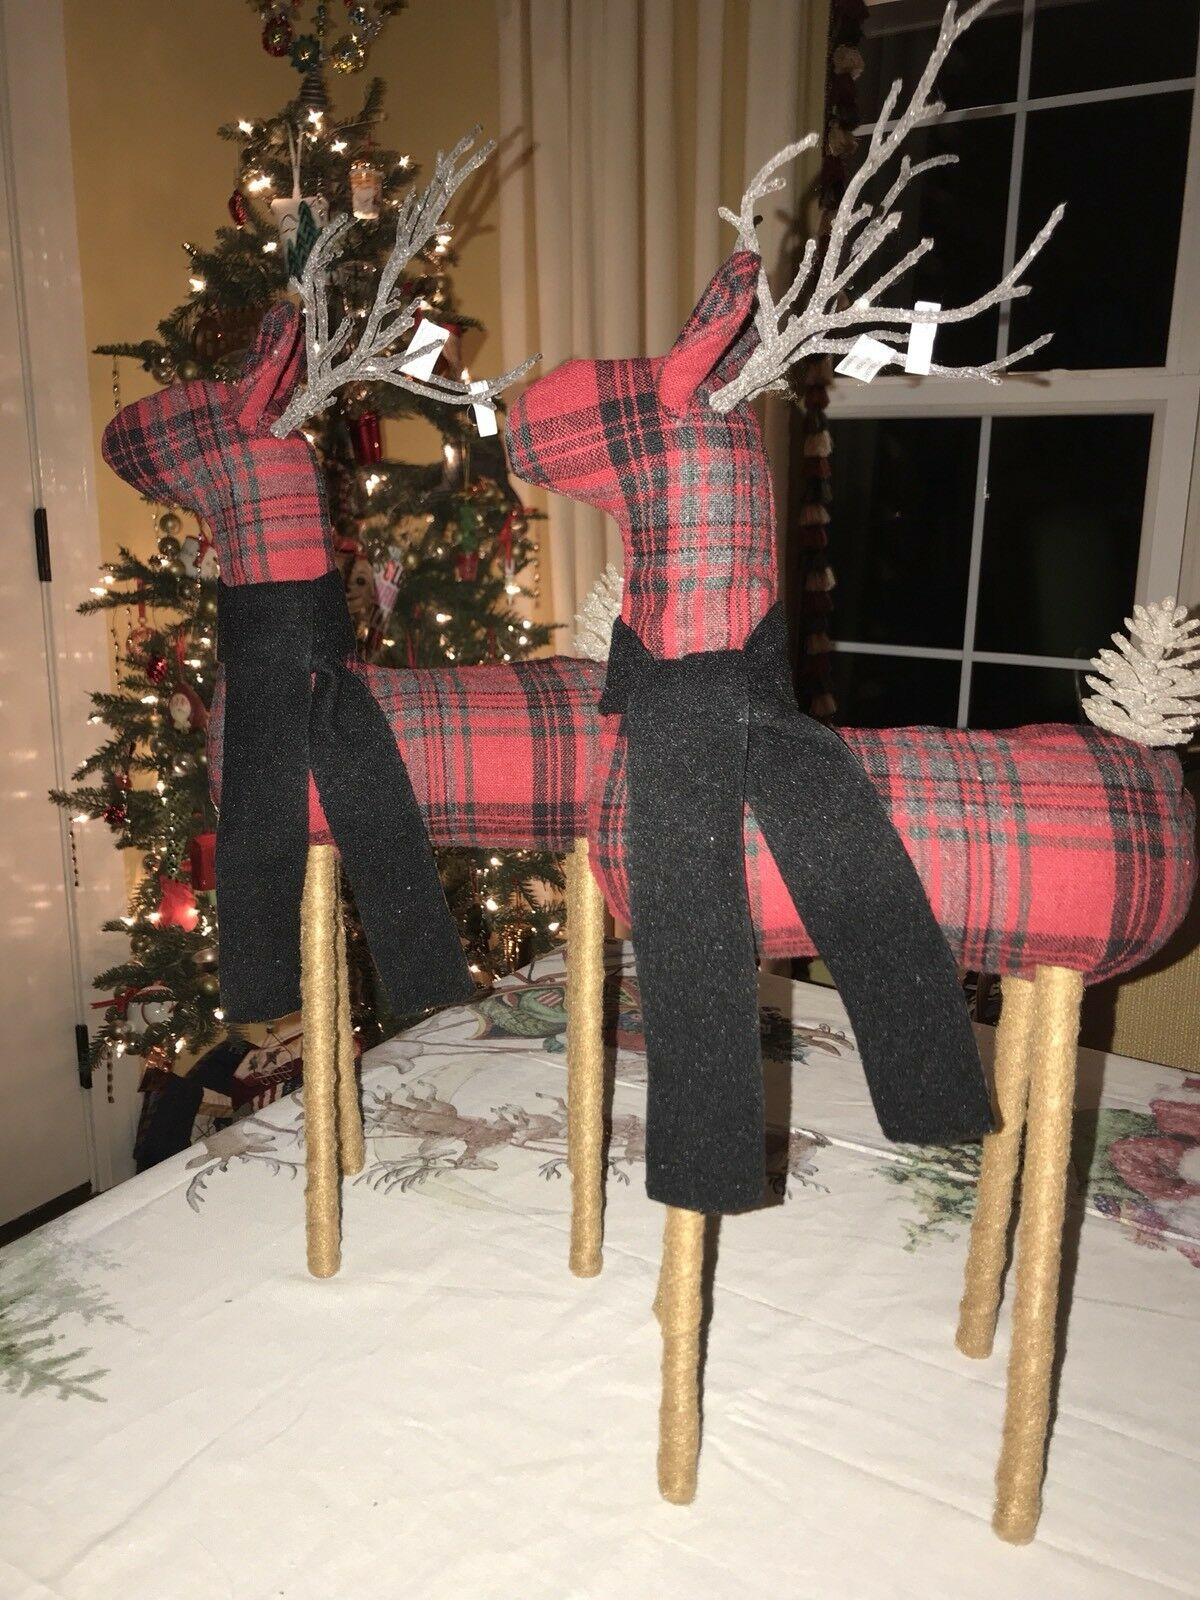 NEW Pottery Barn SET of 2 FABRIC REINDEER OBJECTS rot PLAID  Medium 20  Tall